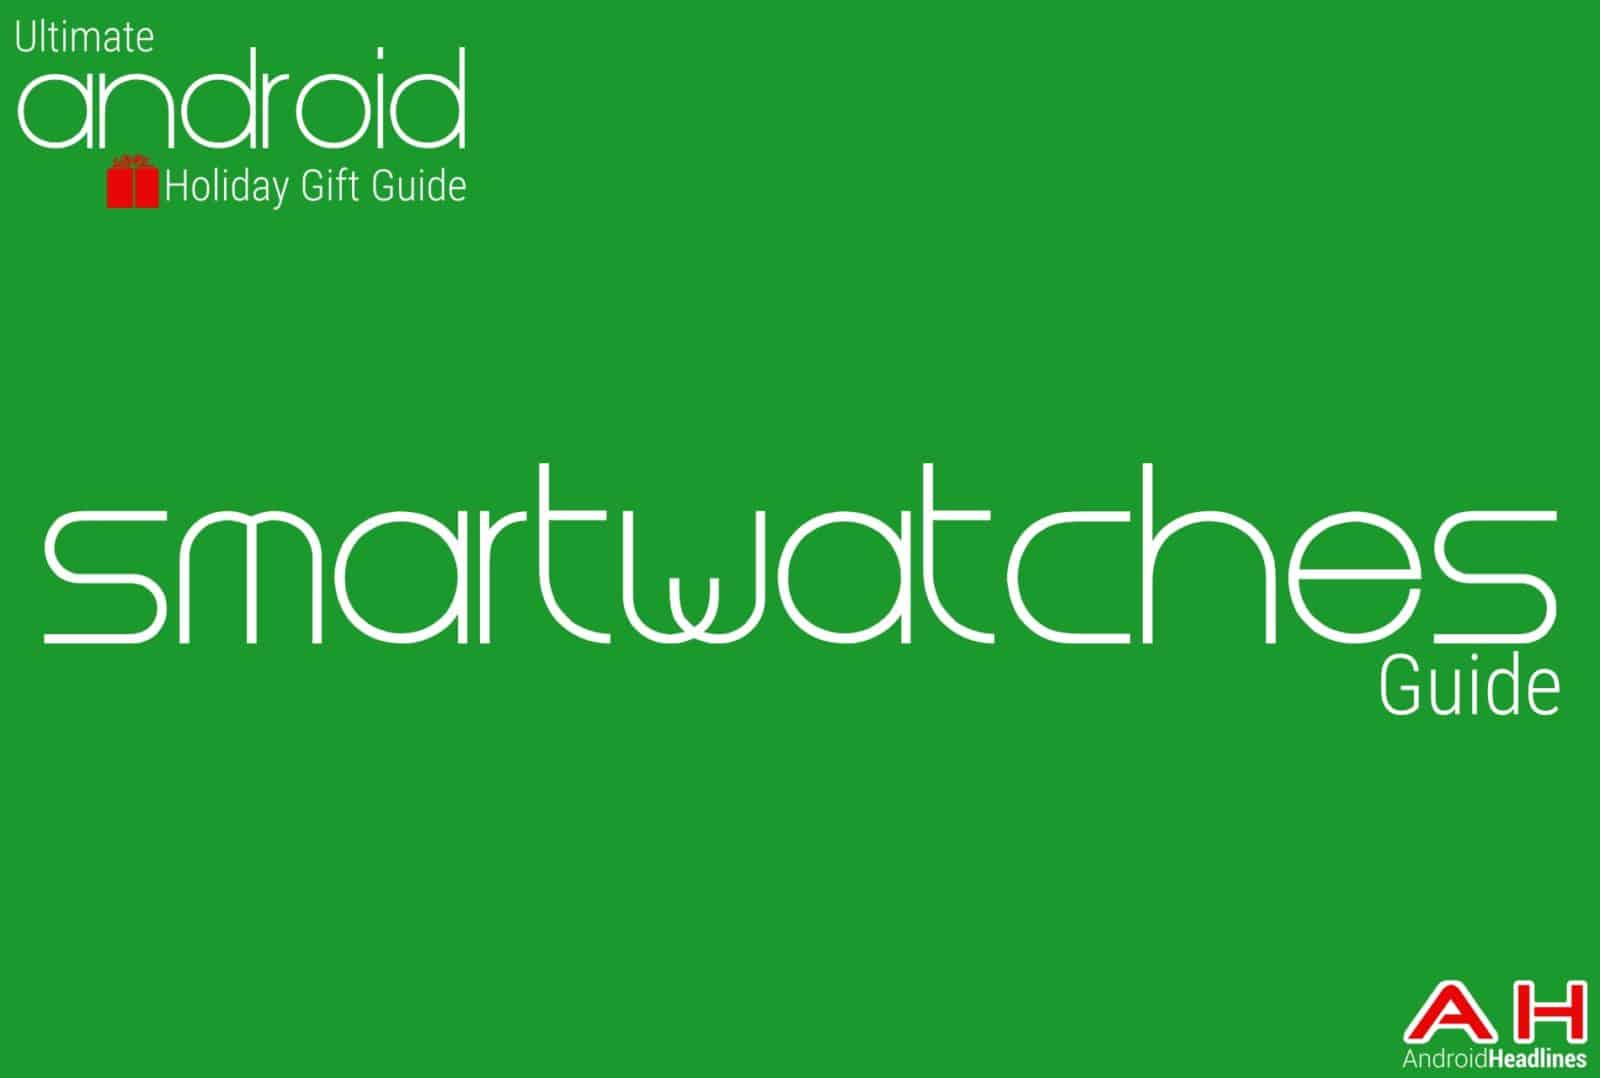 Best Android smartwatches Guide - Android Holiday Gift Guide Top 10